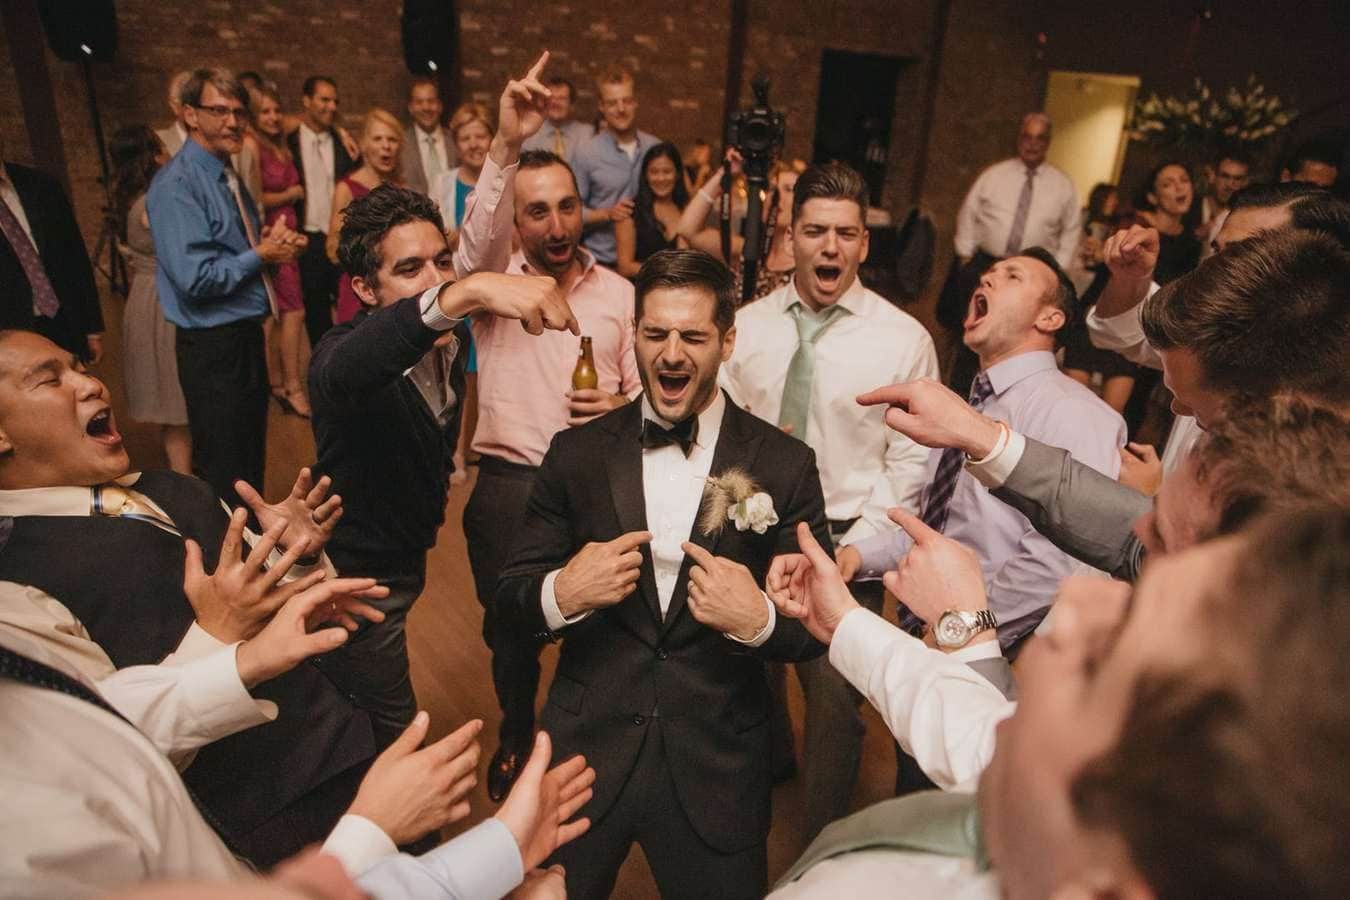 Friends of groom stand around him in a circle and sing enthusiastically during wedding reception